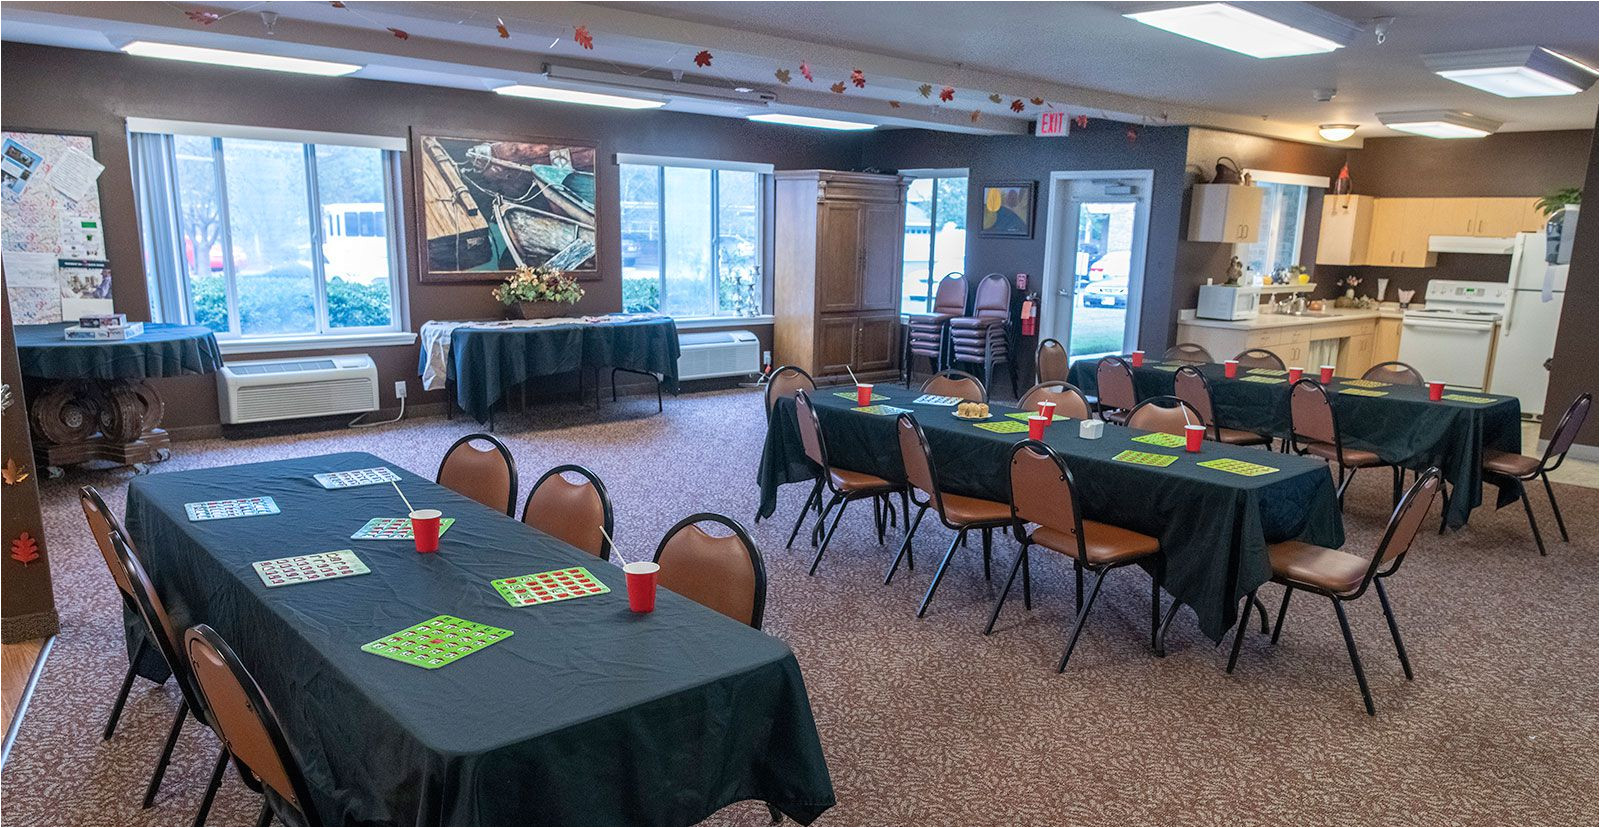 resident activity room at jordan oaks independent senior living community